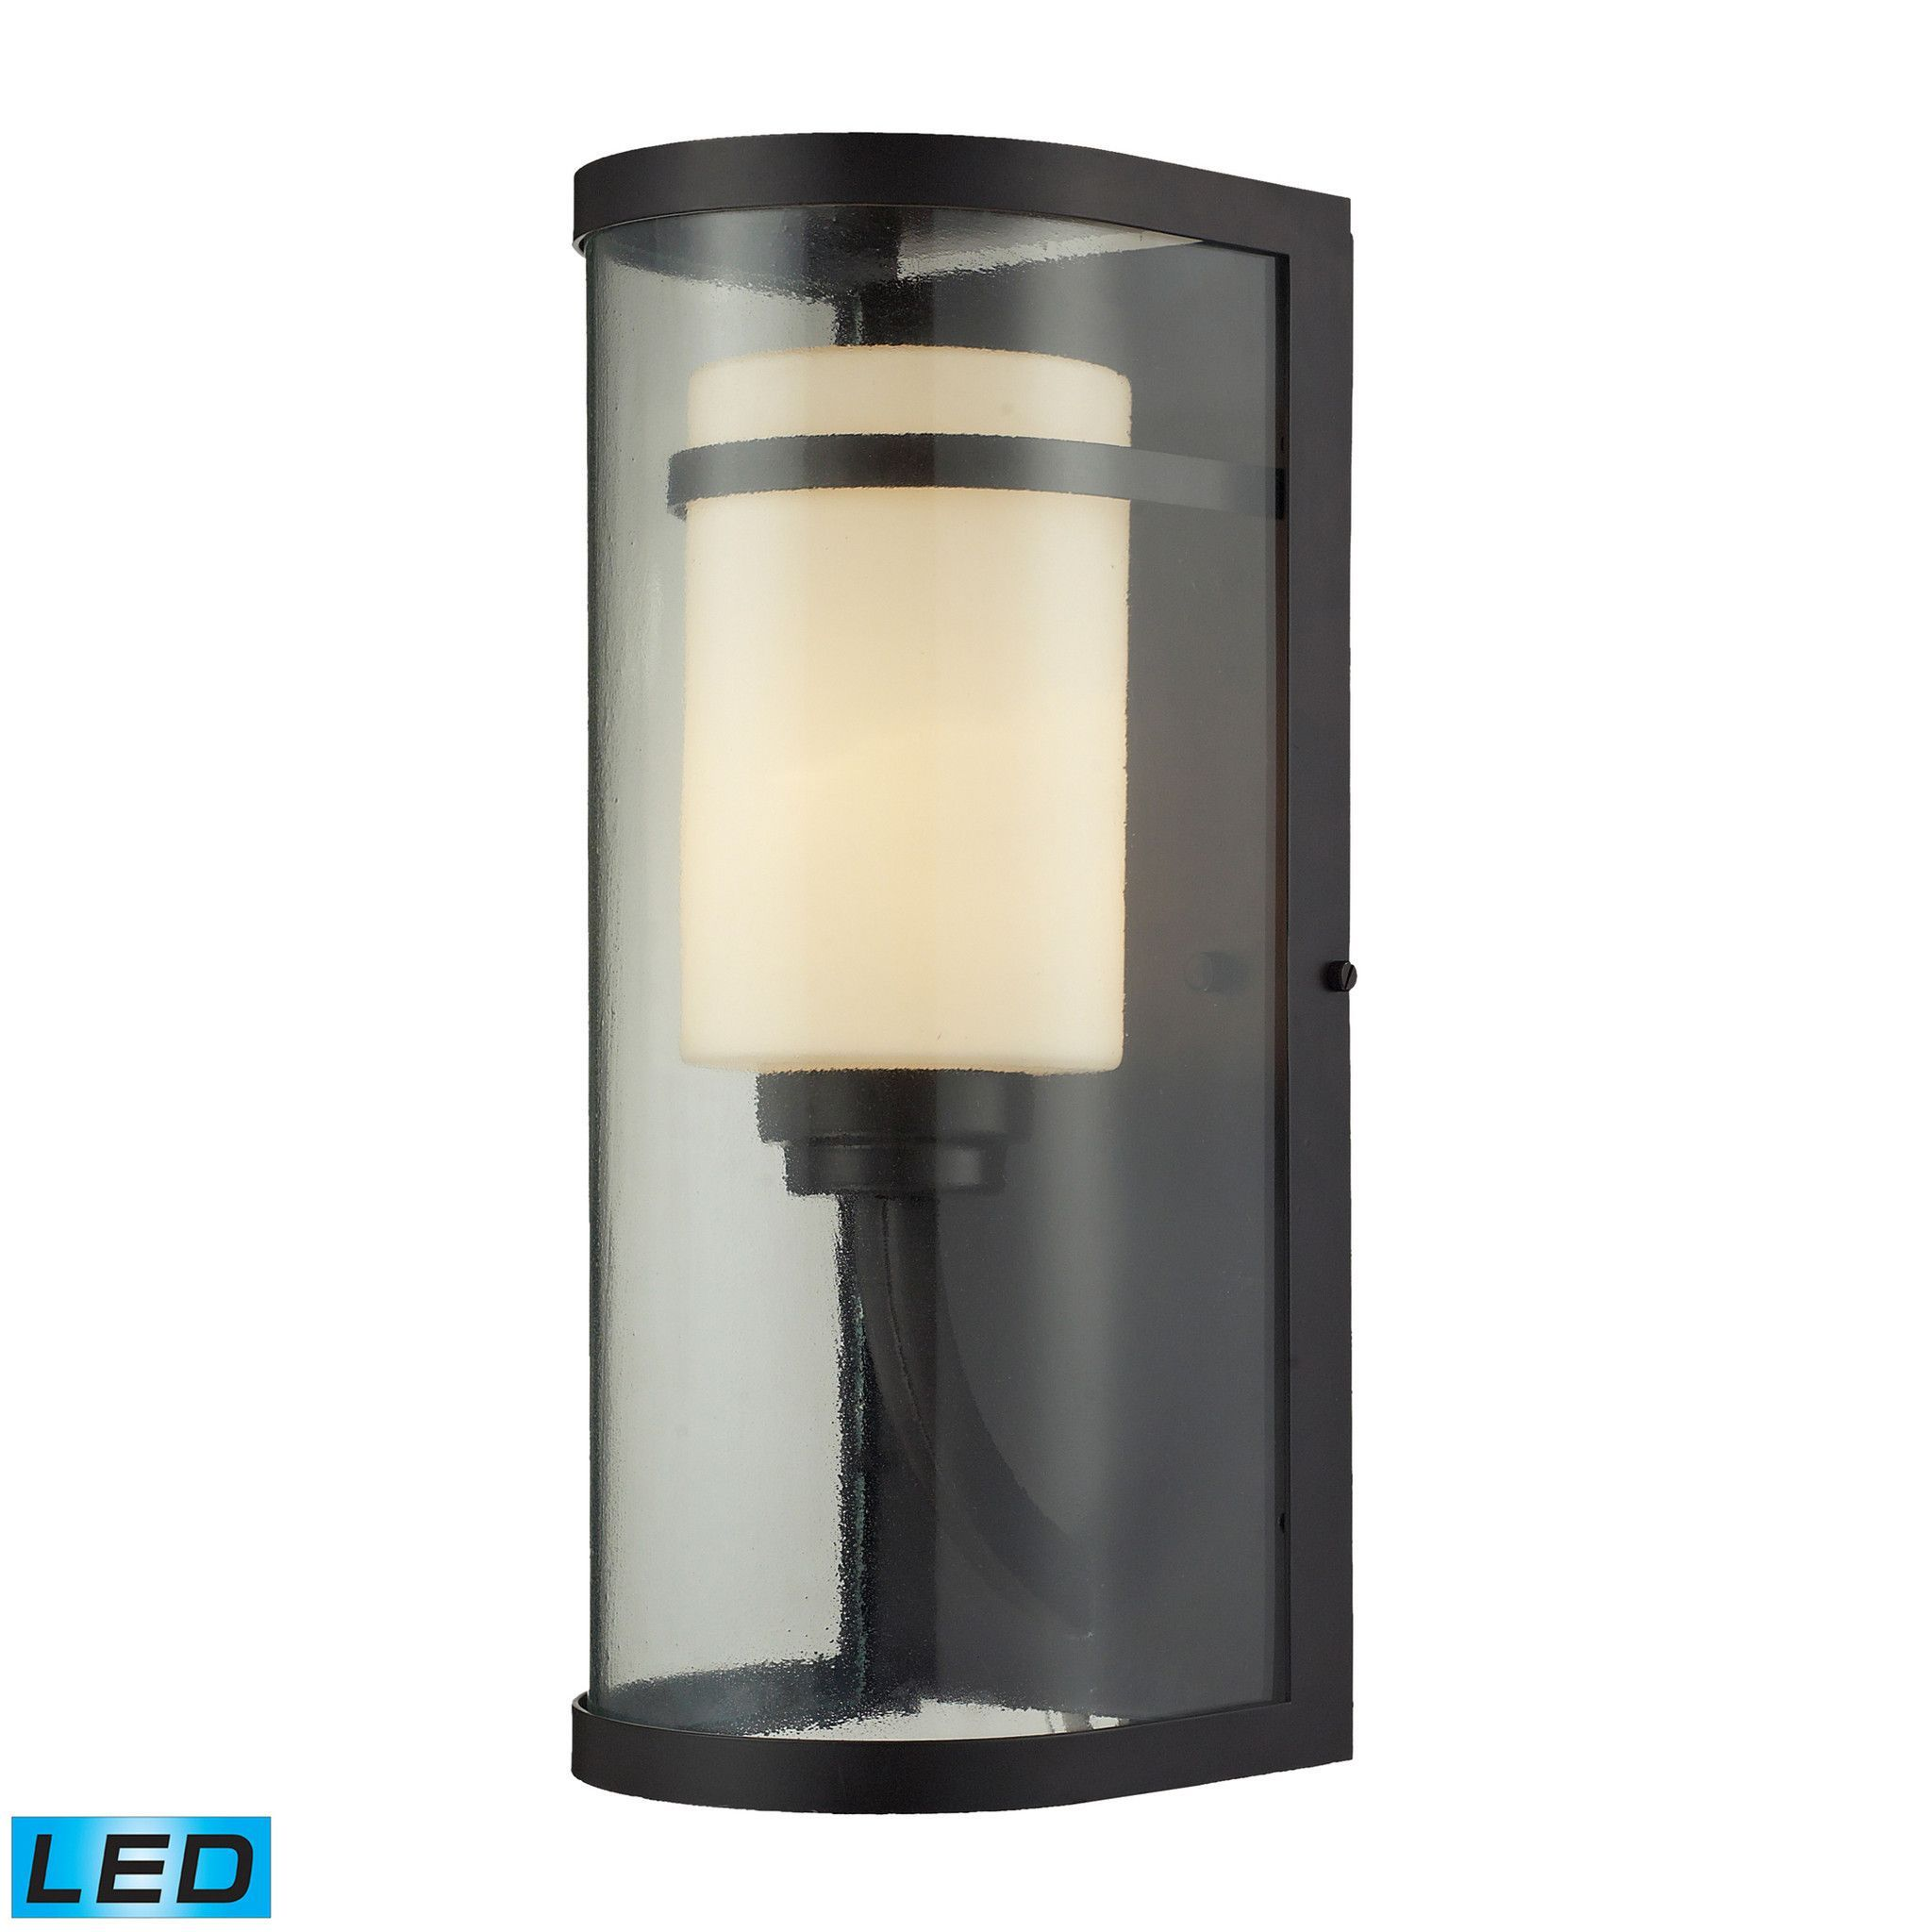 Elk lighting 141021 led caldwell outdoor wall sconce elk elk lighting 141021 led caldwell outdoor wall sconce amipublicfo Image collections